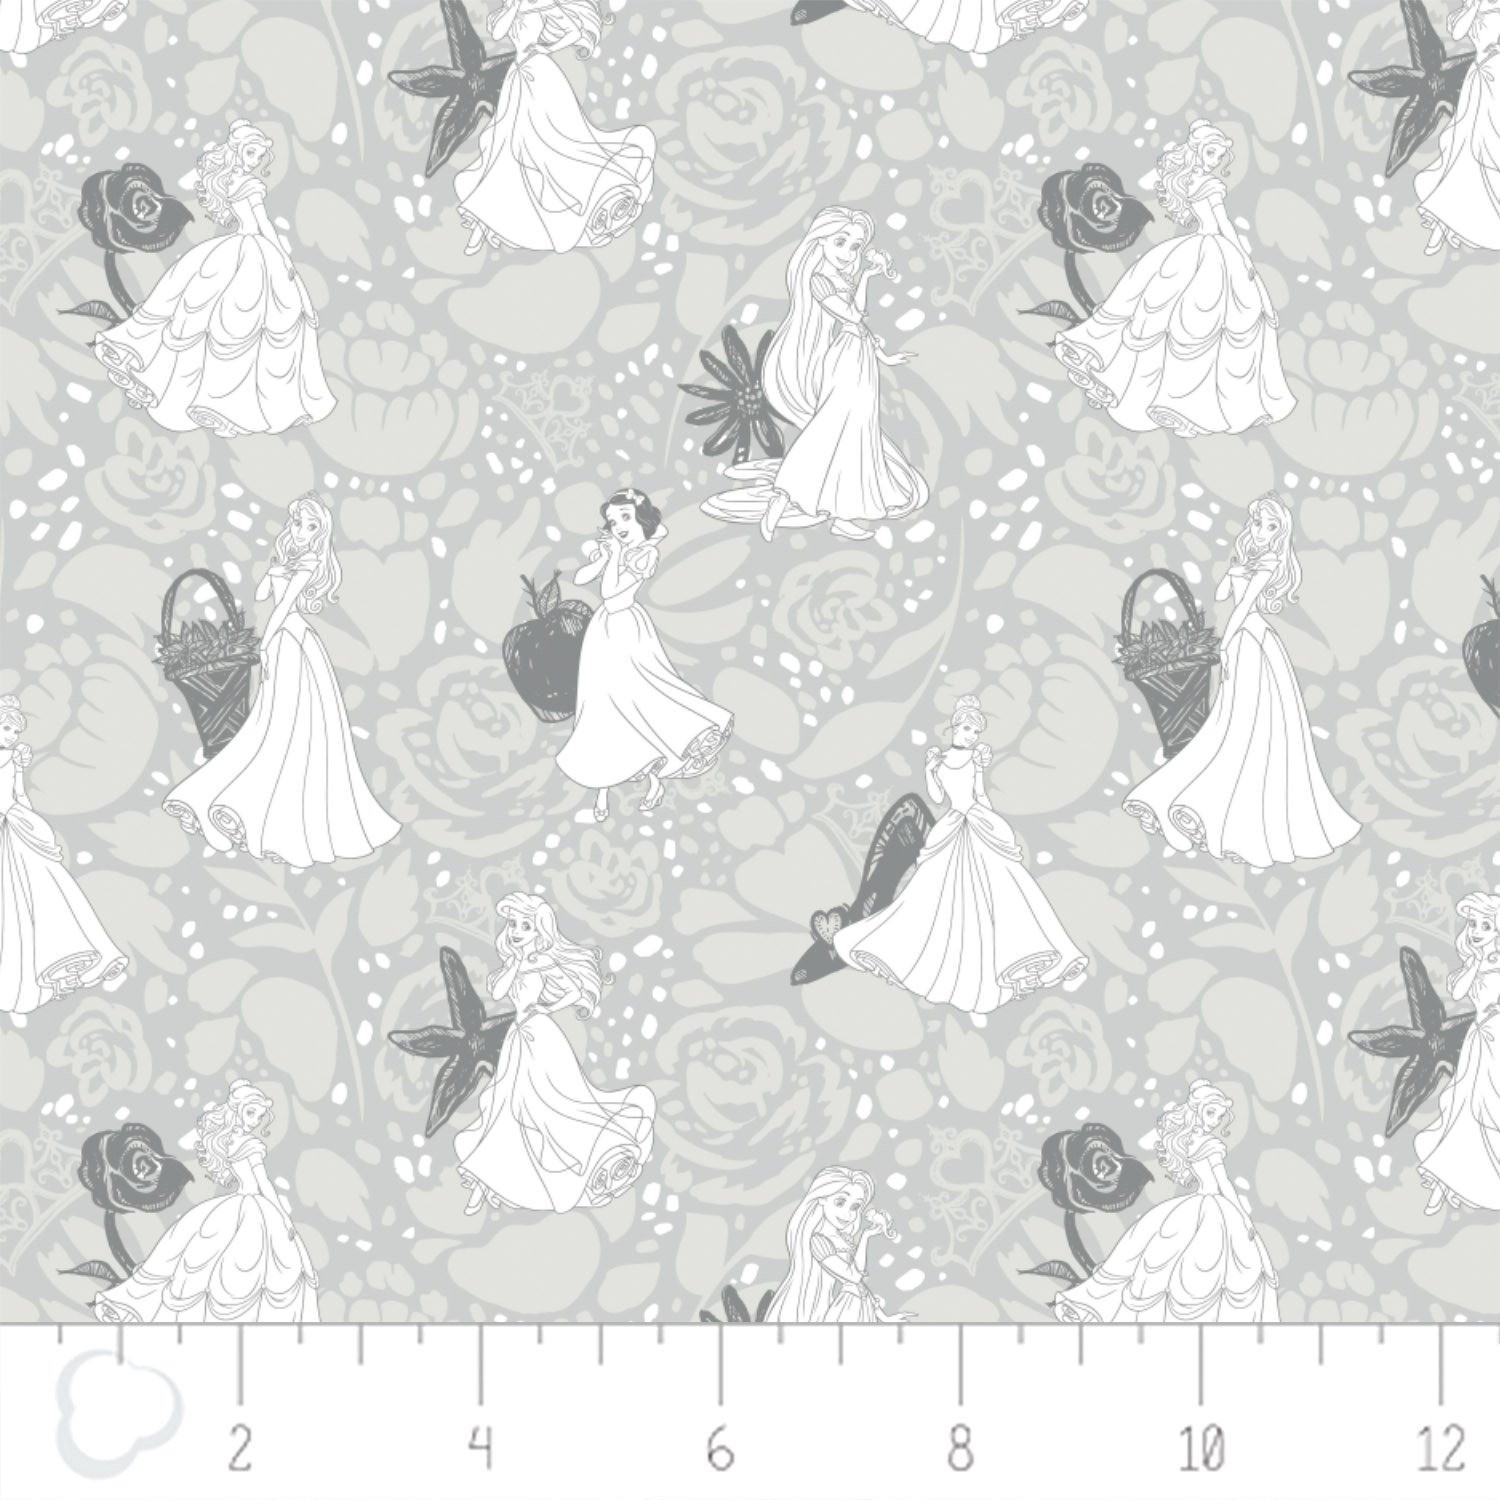 Camelot - Disney Princesses - Line Drawing in Grey